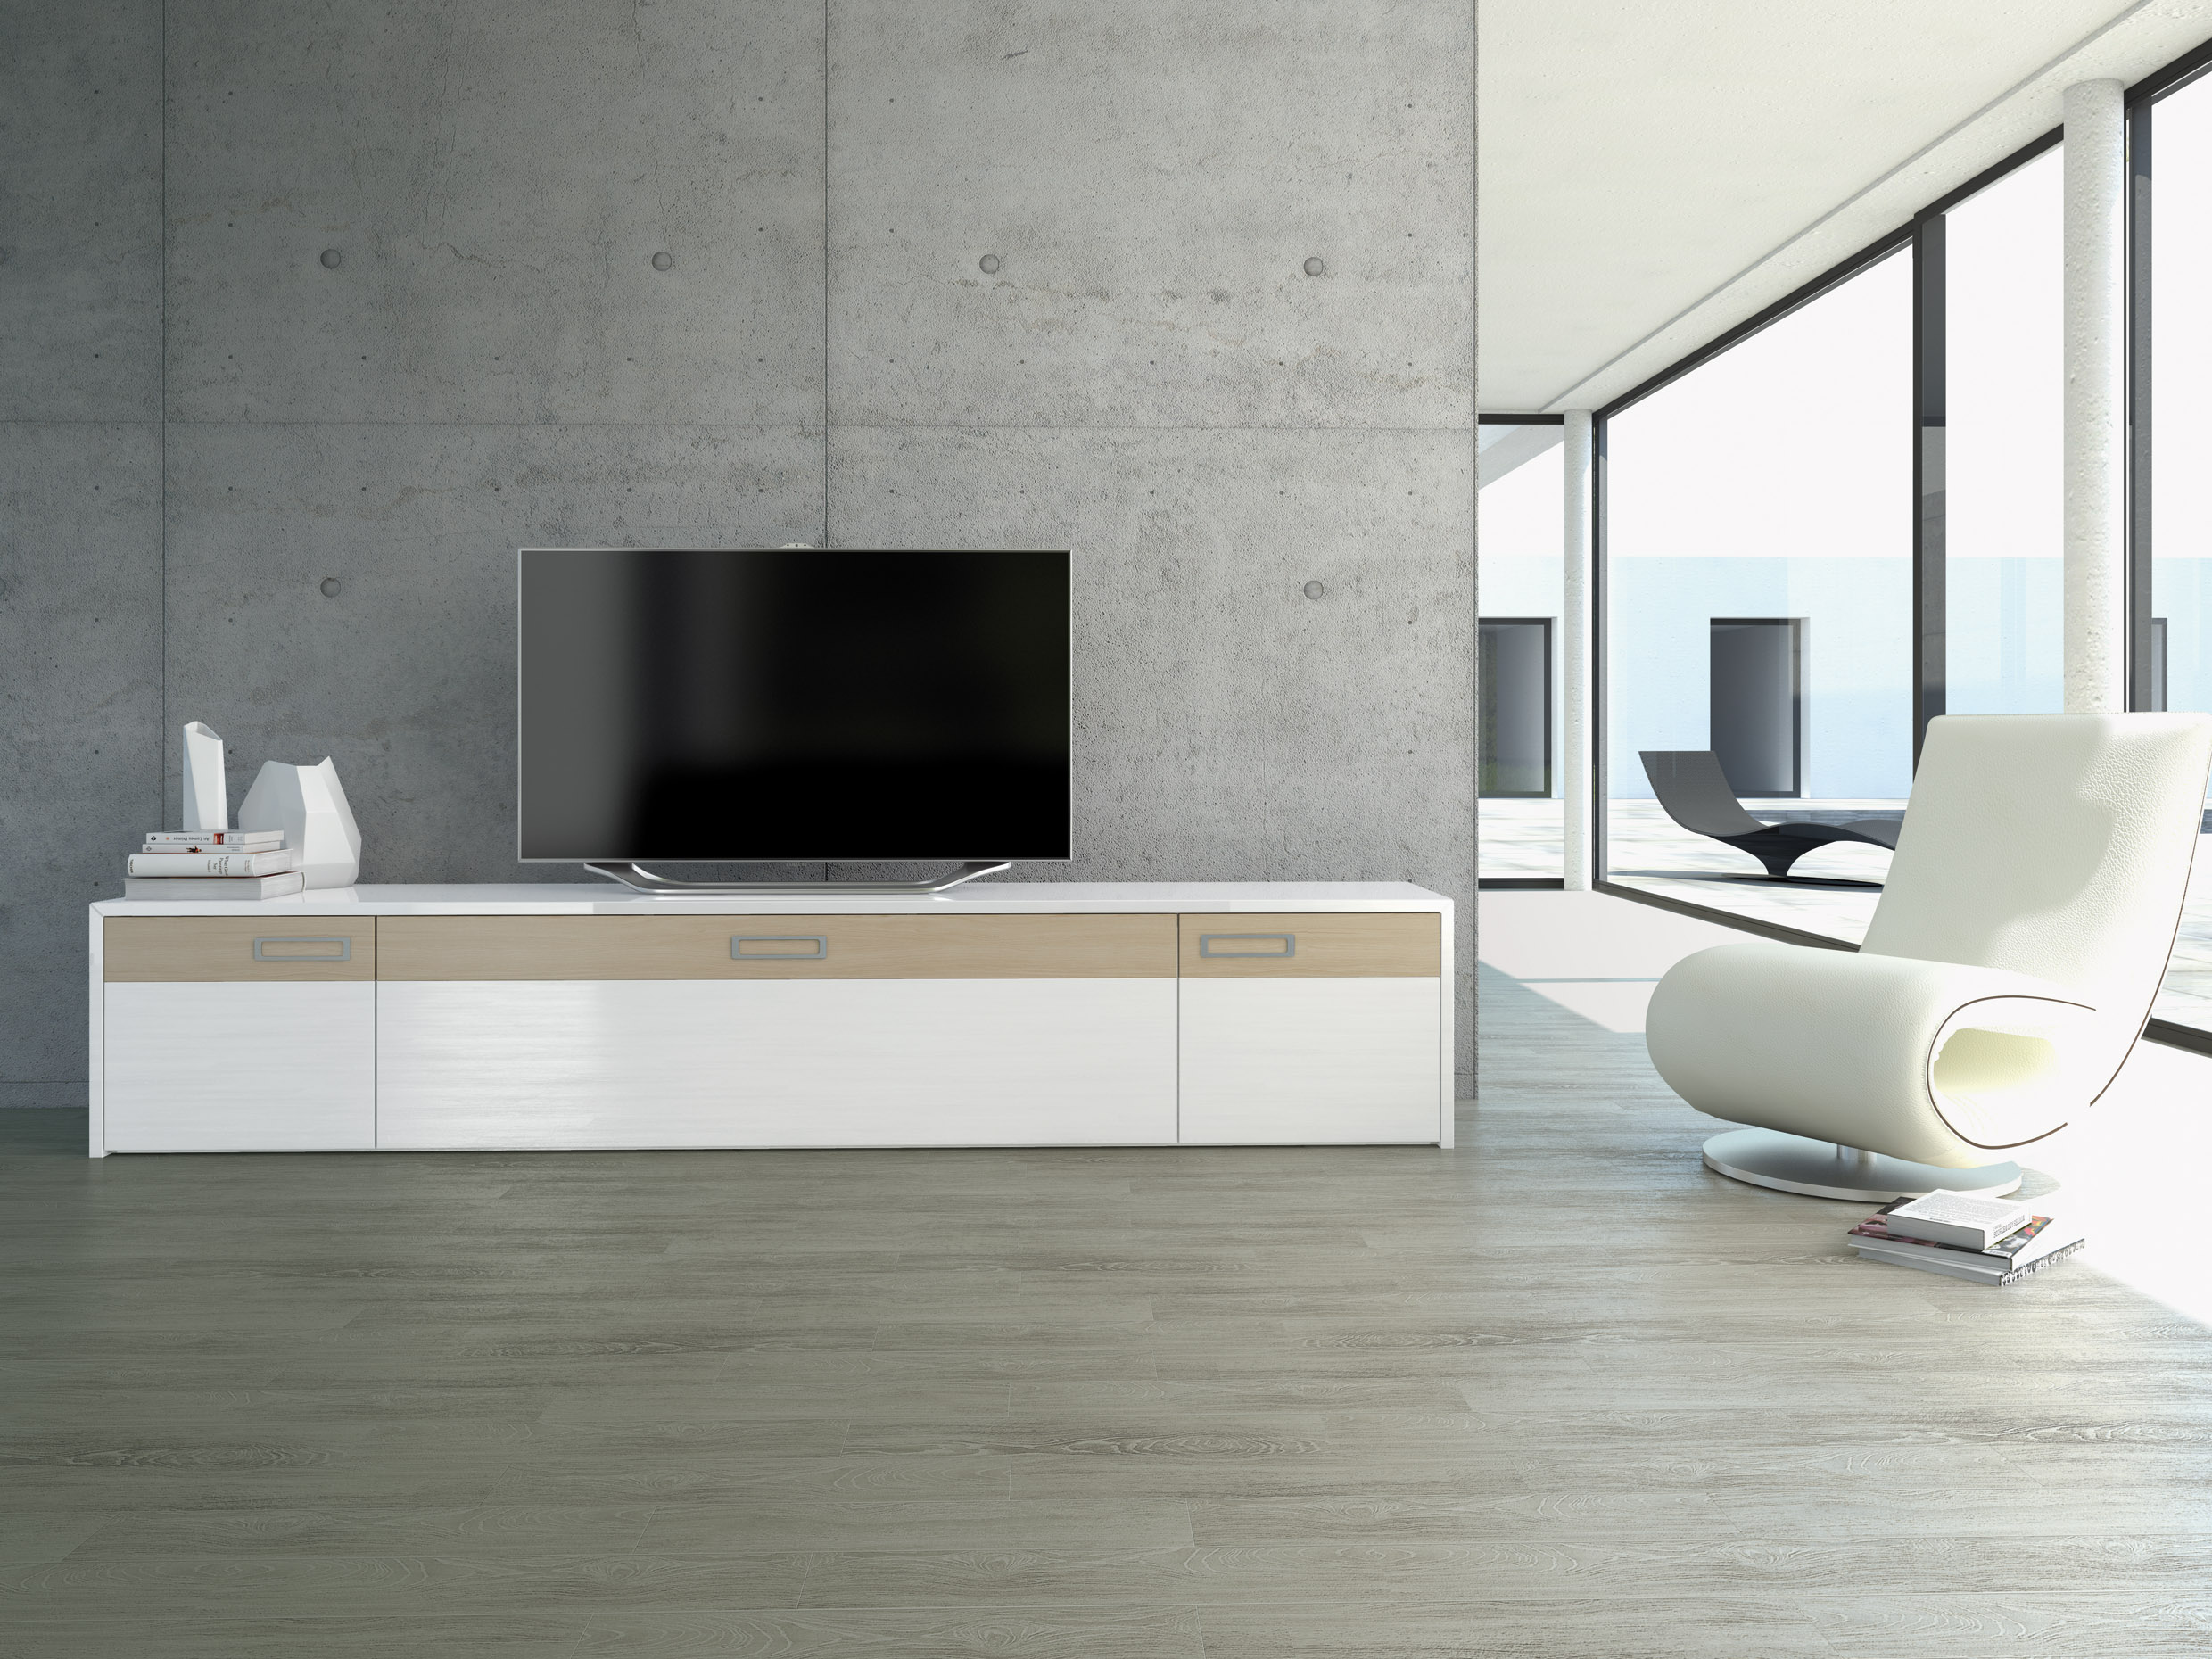 tv m bel mit halterung archive seite 2 von 4 tv m bel und hifi m bel guide. Black Bedroom Furniture Sets. Home Design Ideas